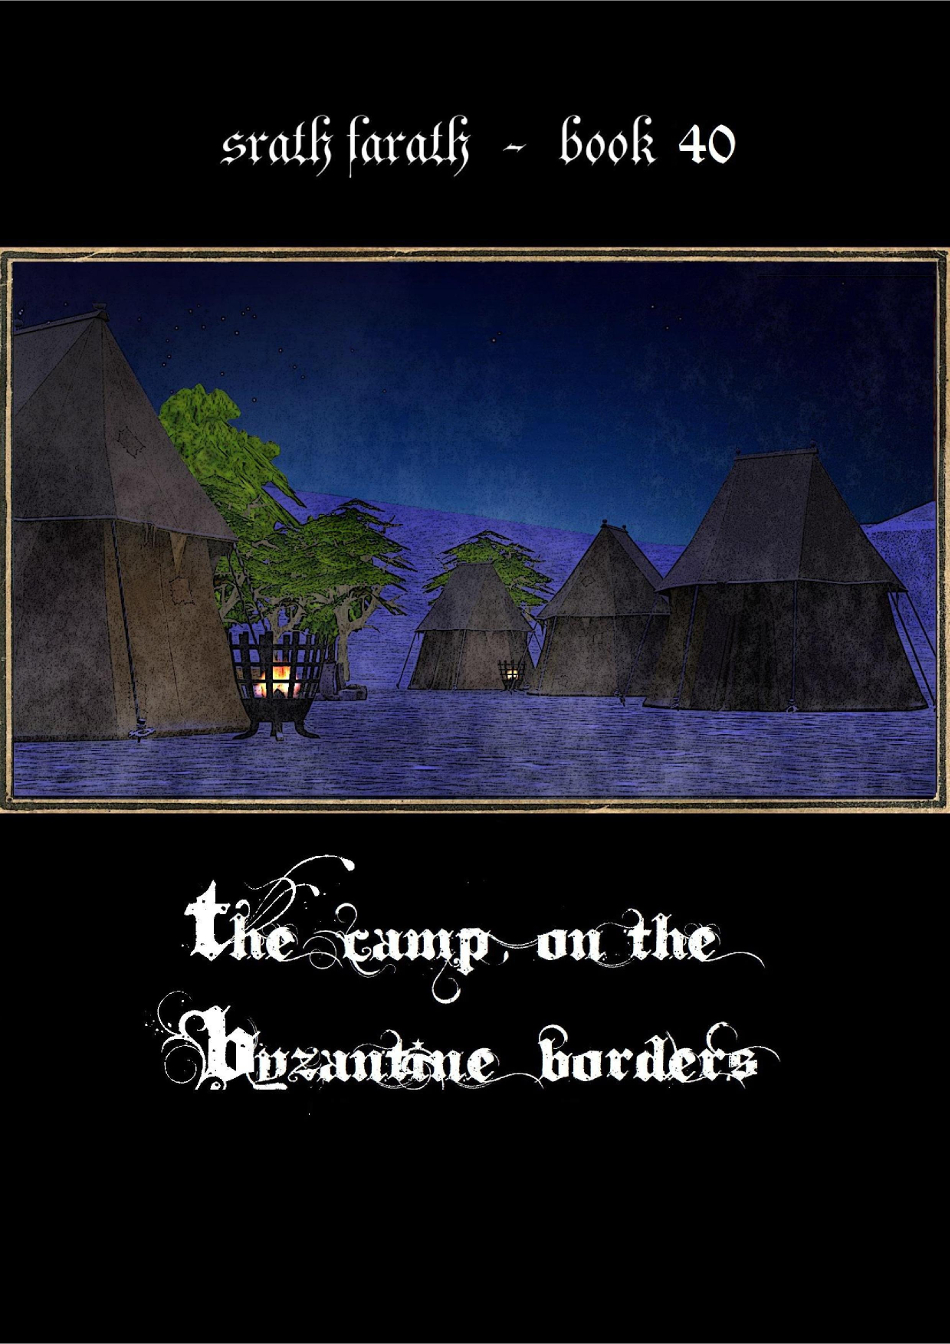 The camp on the Byzantine border p3